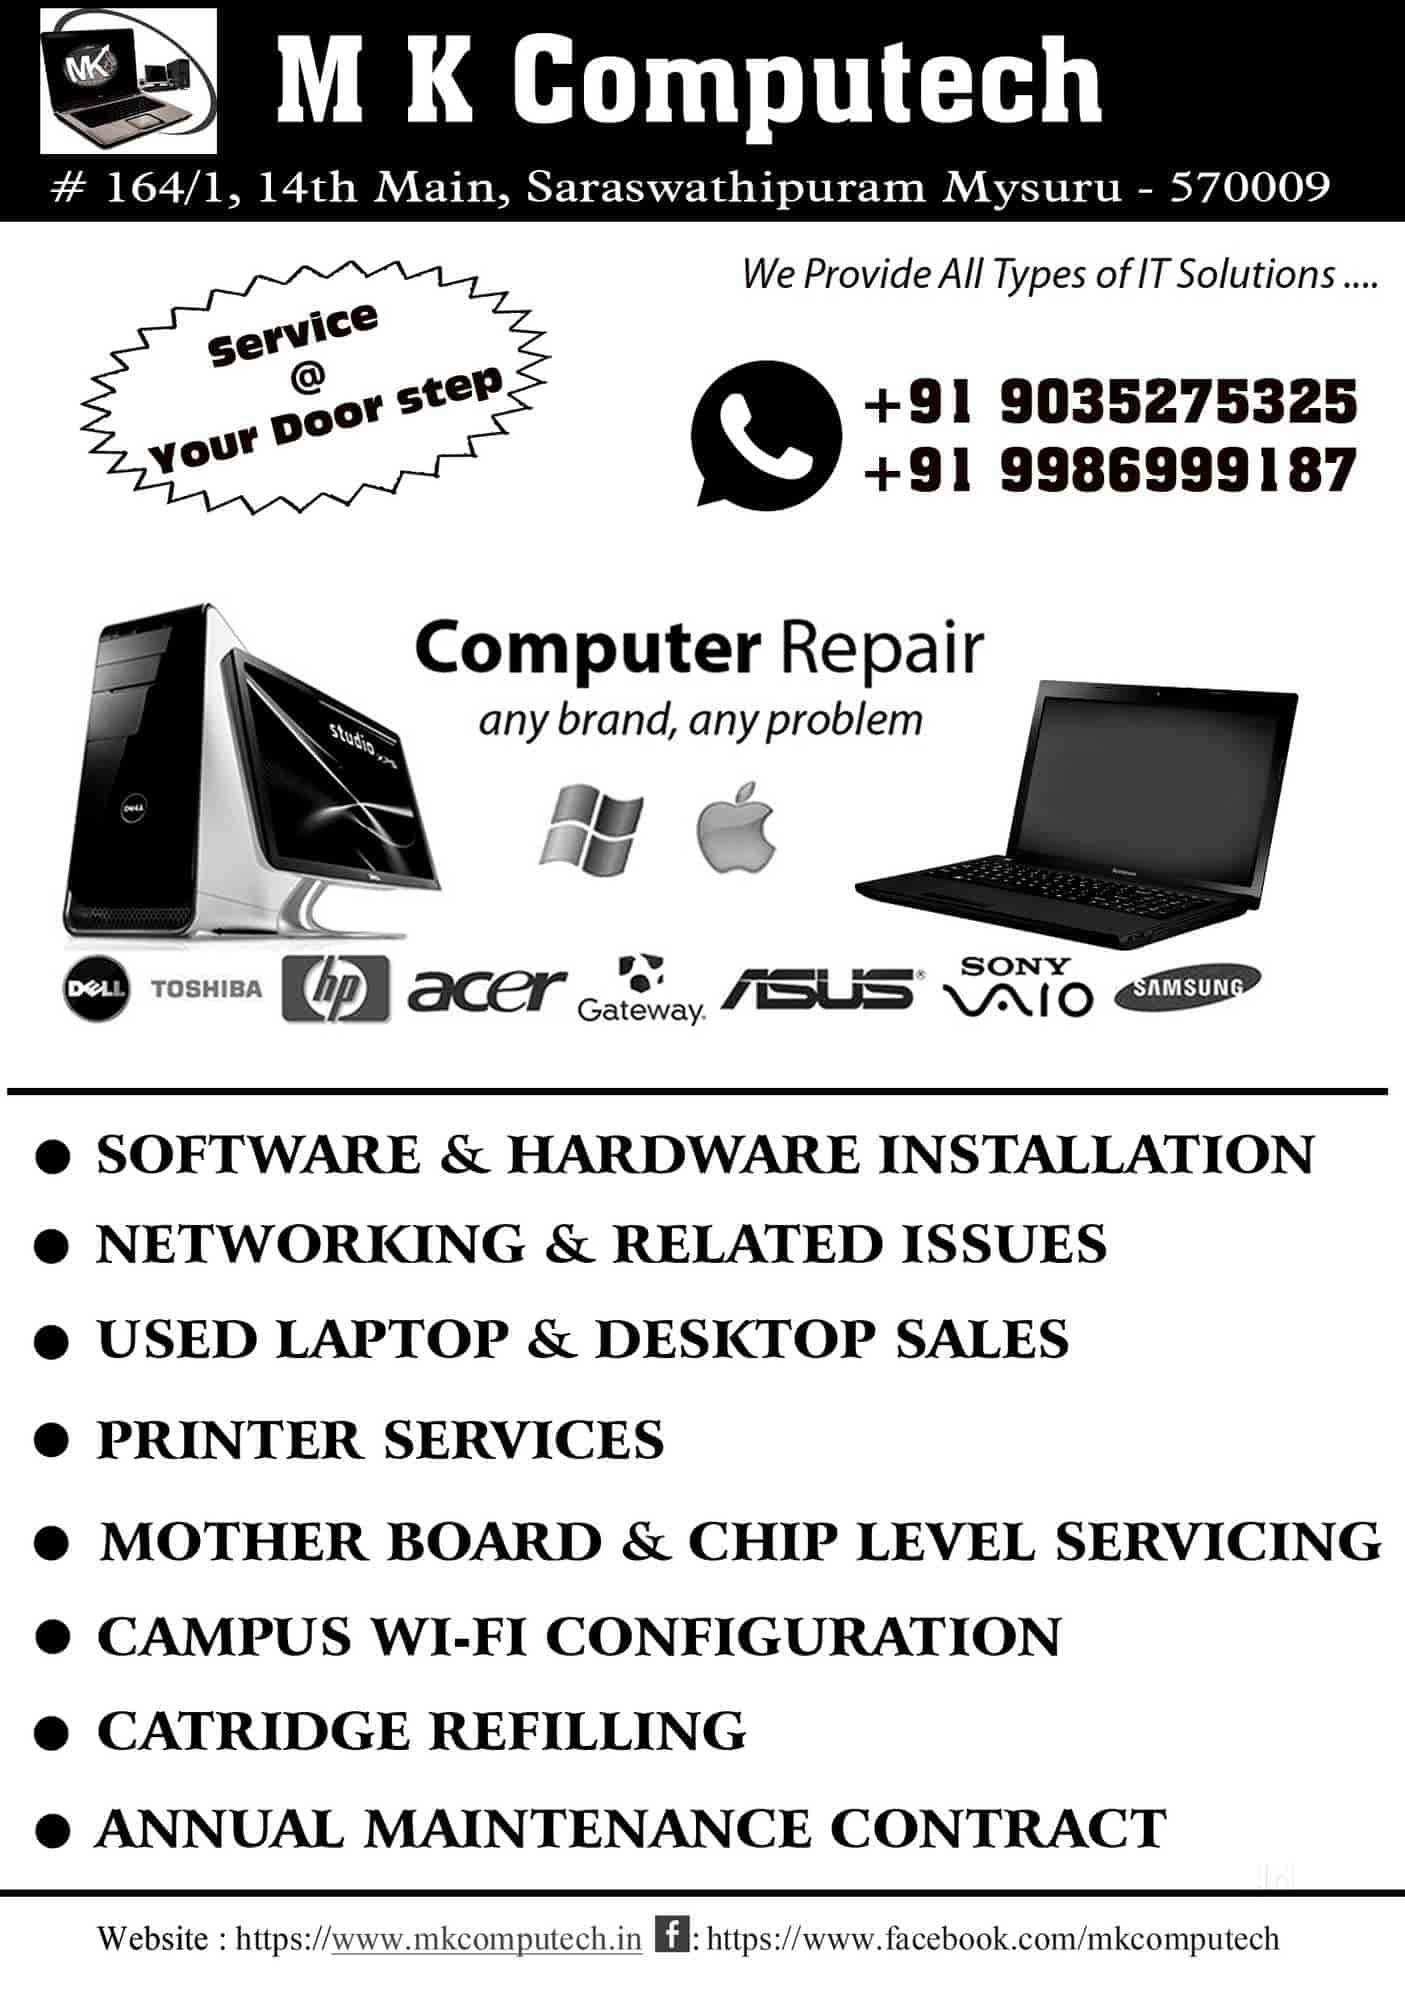 M K Computech Gokulam 2nd Stage Cctv Dealers In Mysore Justdial Mk Wiring Devices Catalogue 2016